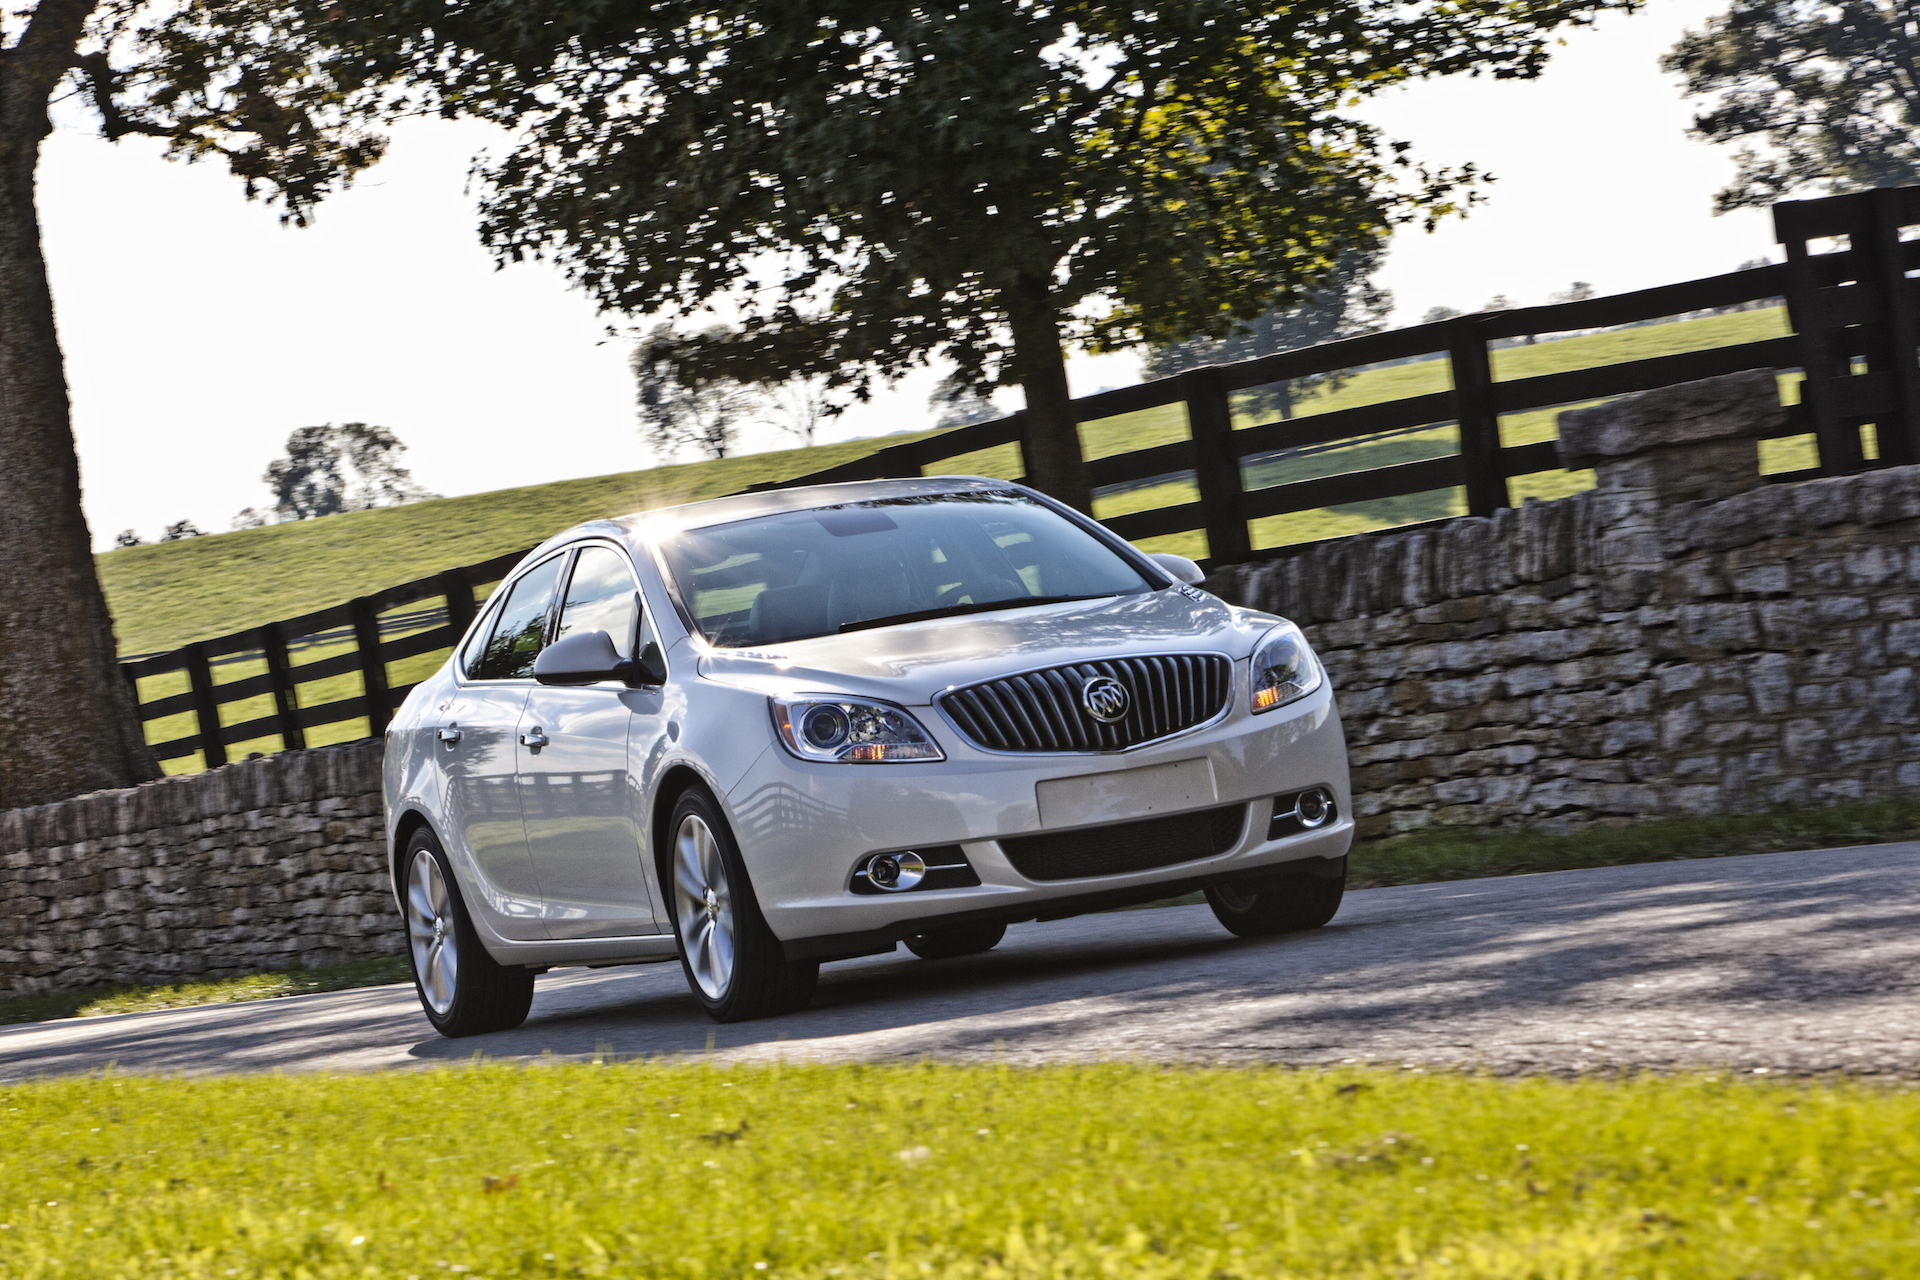 Buick Verano To Die As Yet Another Small Sedan Gives Way To Suvs New 2021 Buick Verano Tire Size, Mpg, Gas Mileage